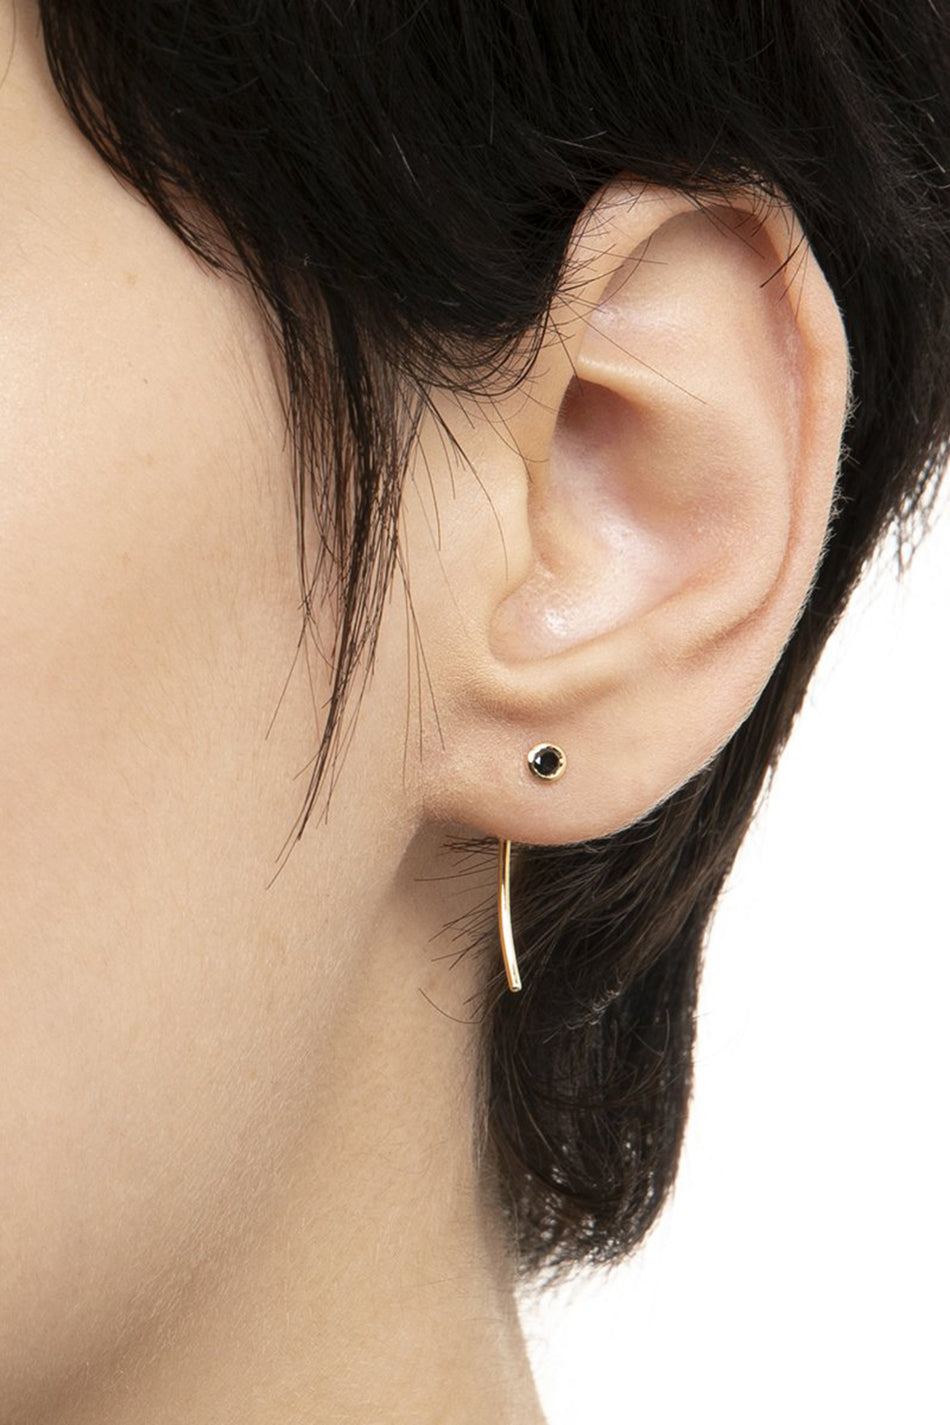 HIROTAKA - Black Diamond Short Arrow Earring, gold